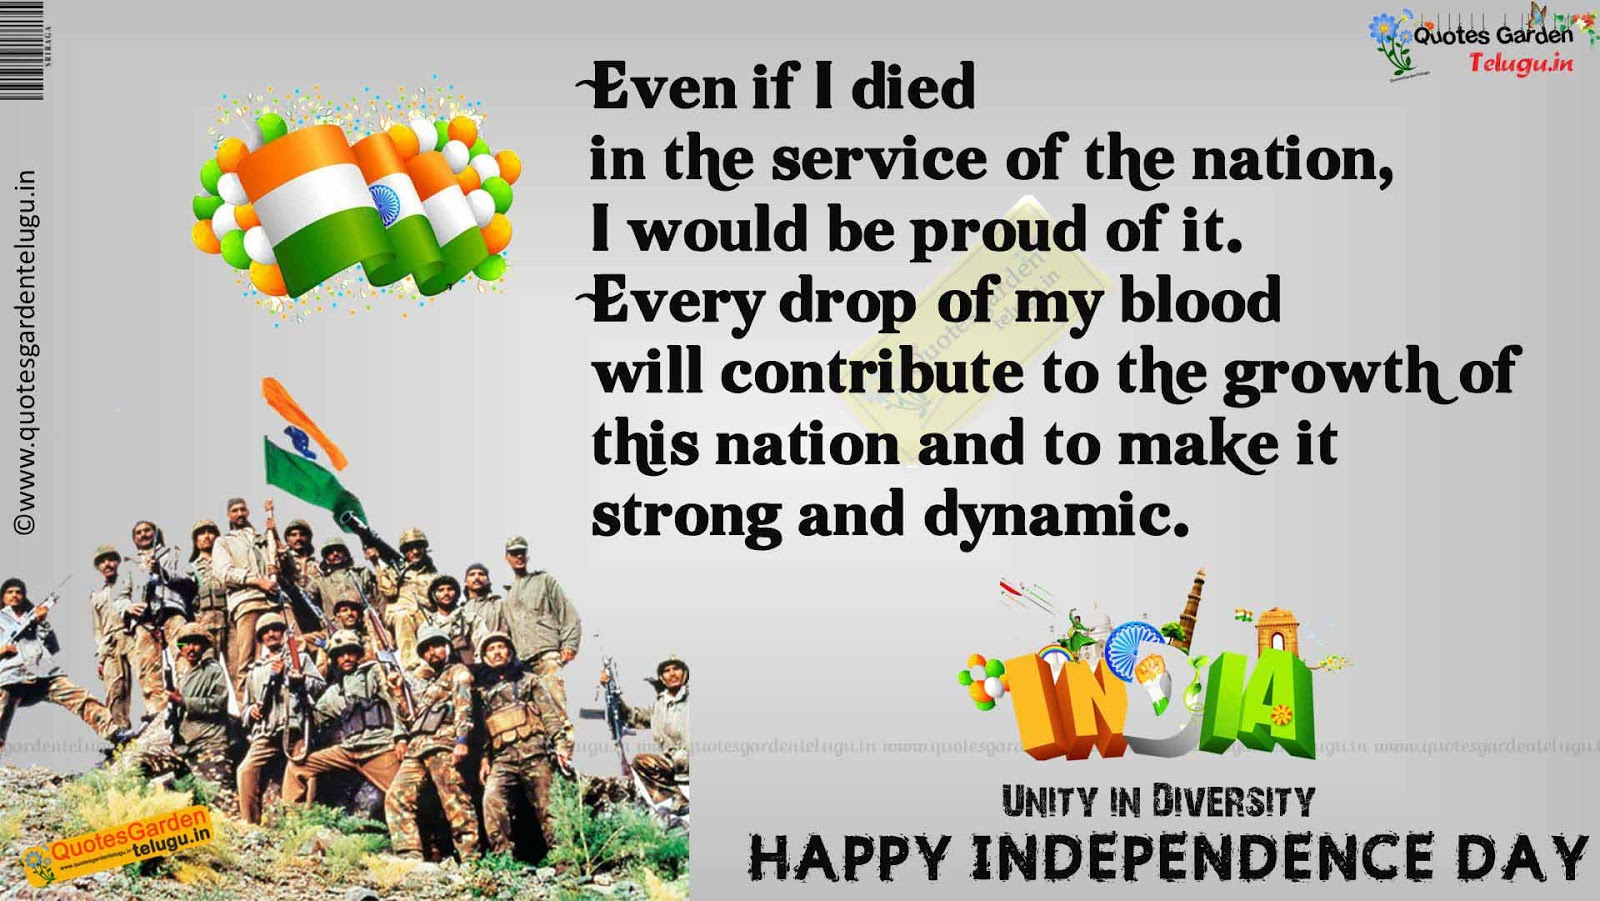 Independenceday Indian Army Quotes Wallpapers Images 852 Quotes